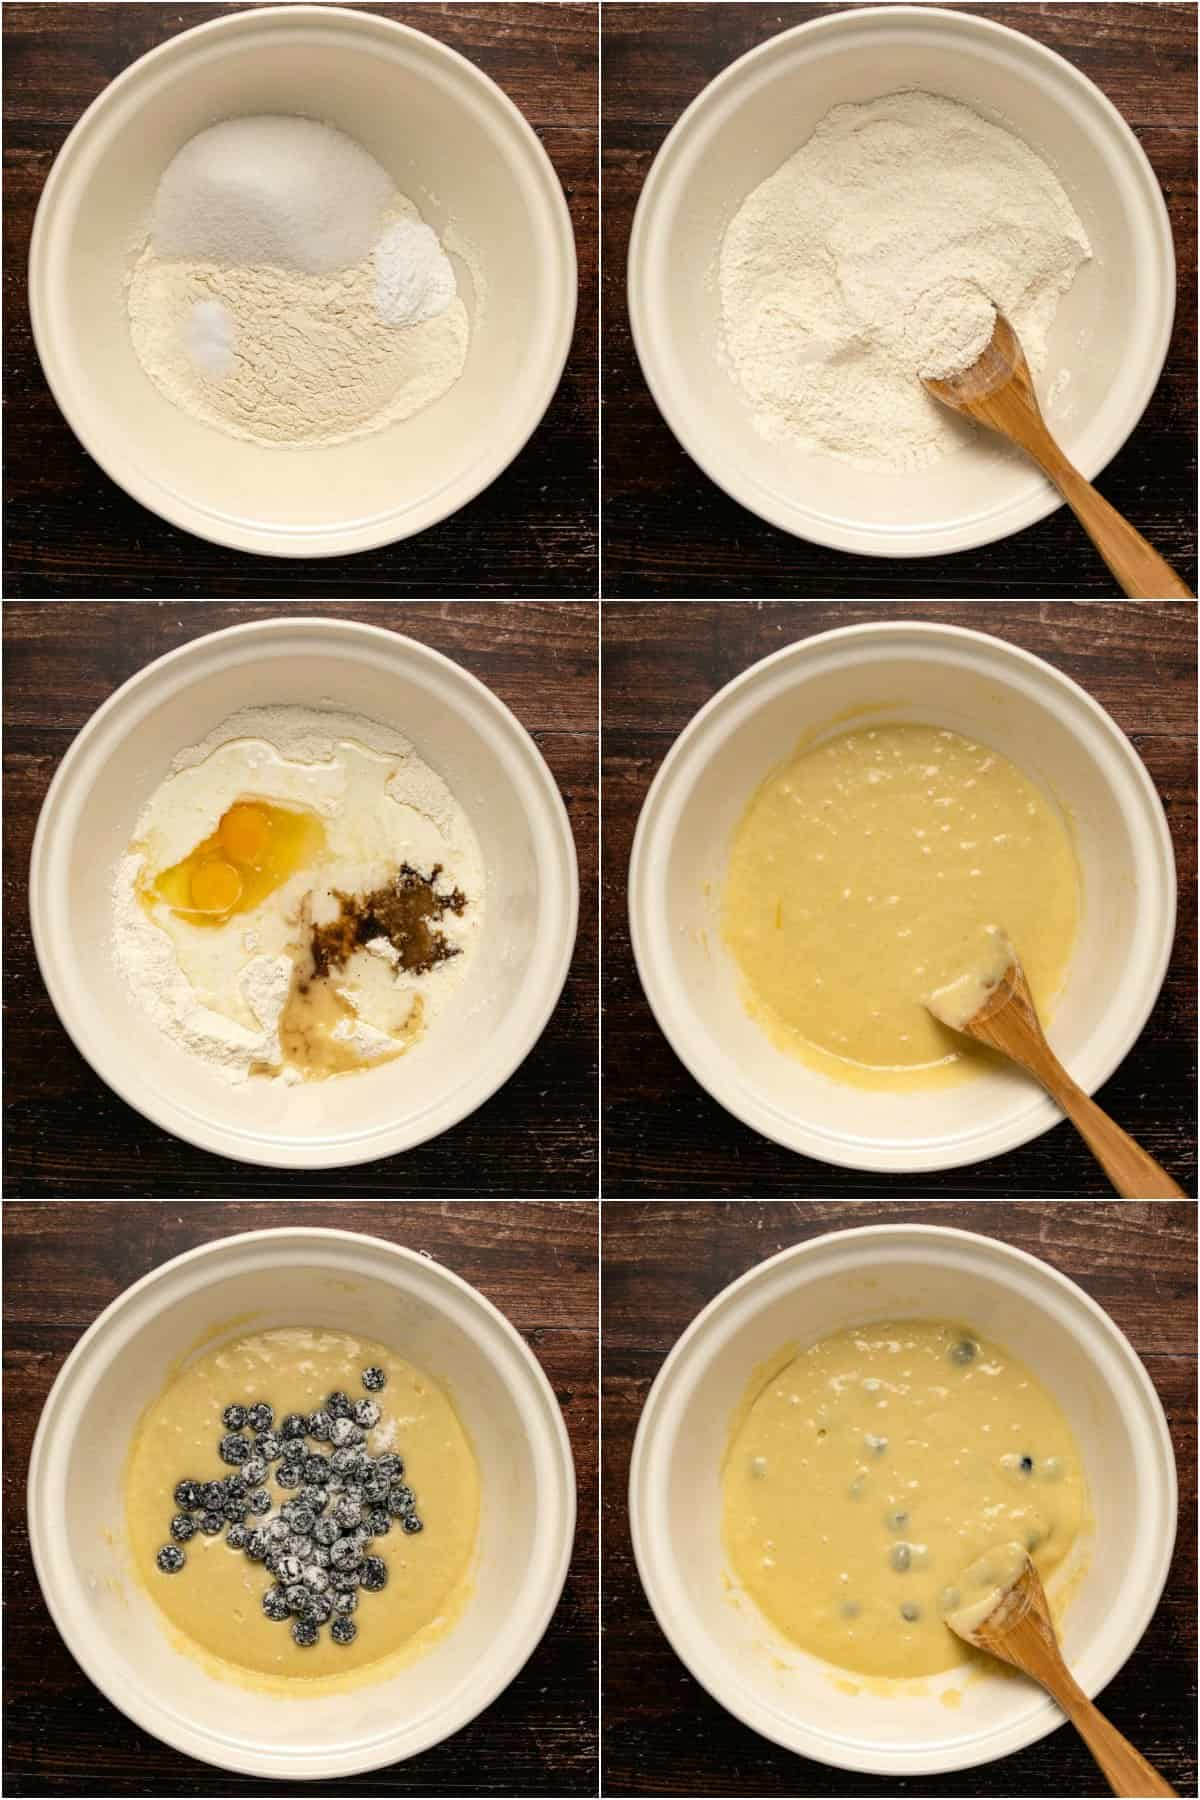 Step by step process photo collage of making the batter for blueberry muffins.